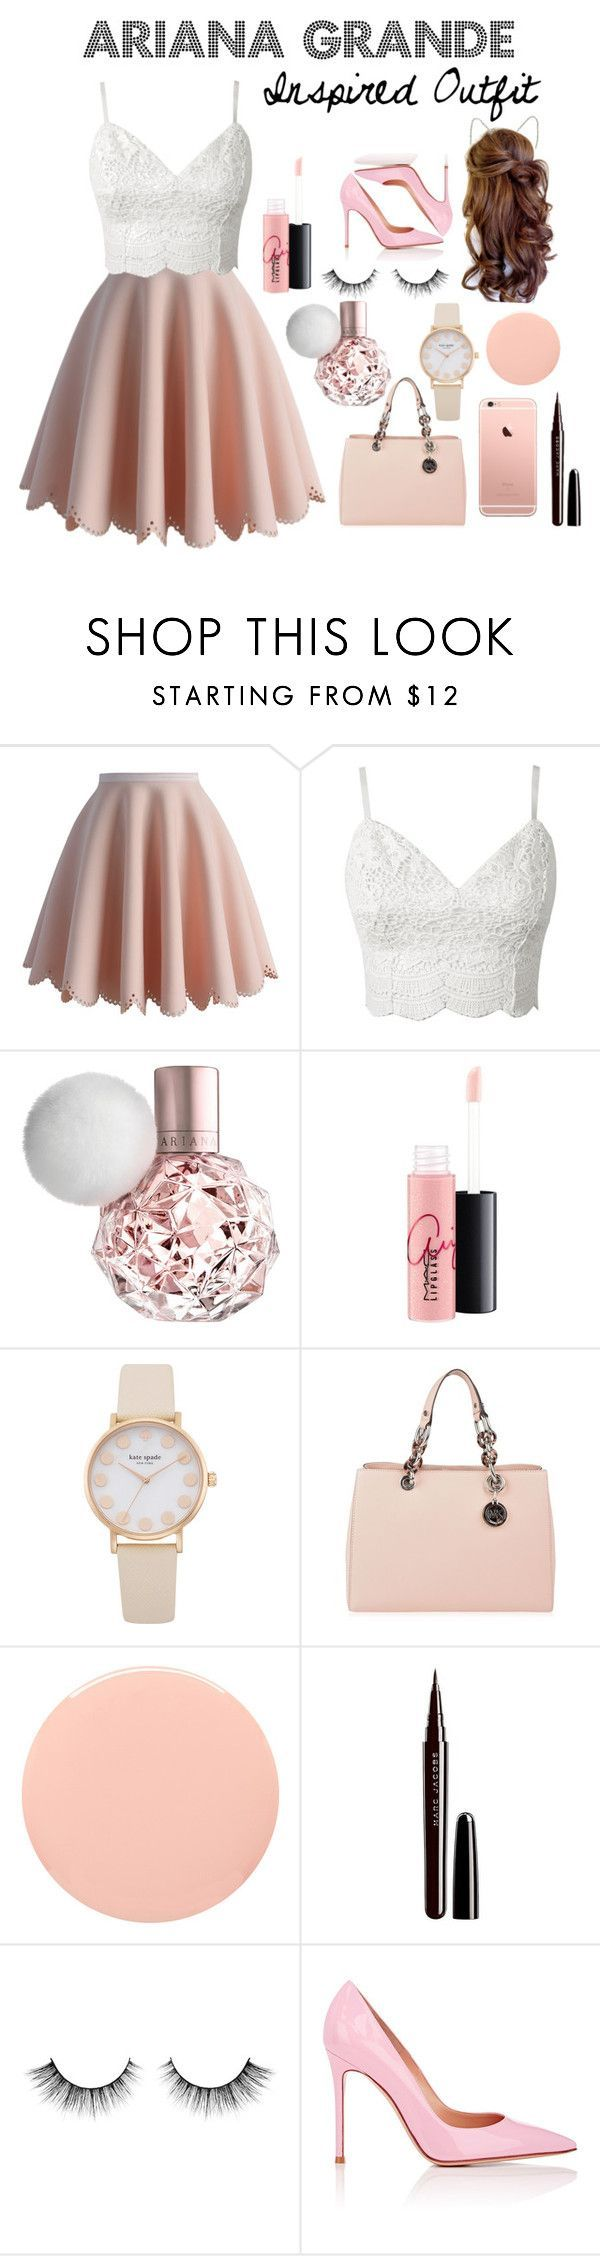 """Ariana Grande Inspired Outfit"" by victoriafiocco ❤ liked on Polyvore featuring мода, Chicwish, MAC Cosmetics, MICHAEL Michael Kors, Smith & Cult, Marc Jacobs и Gianvito Rossi"